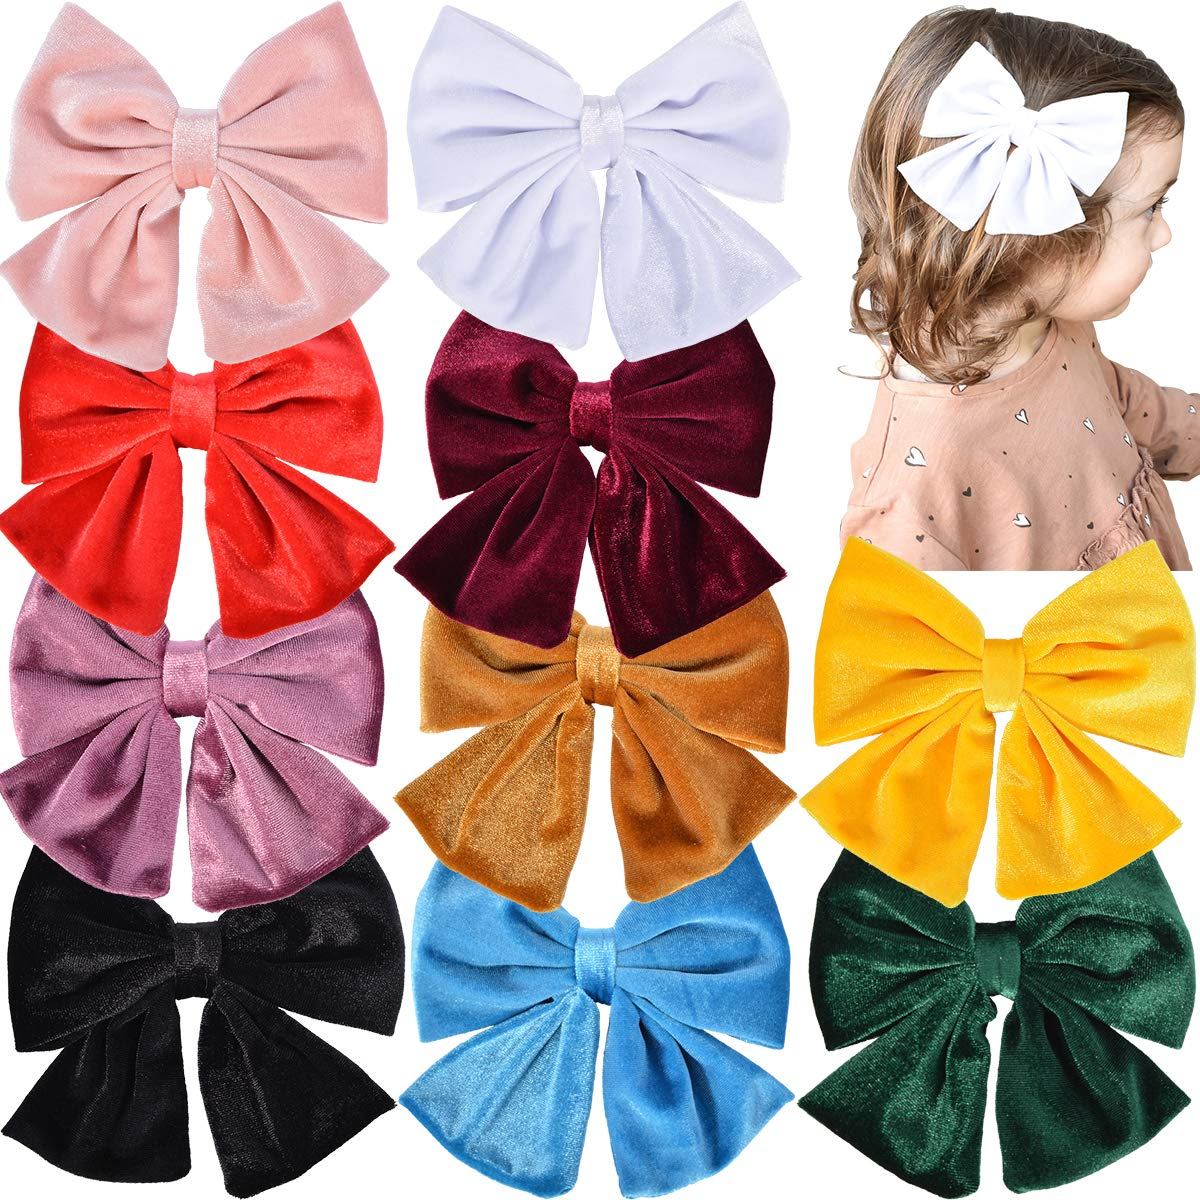 """Velvet Hair Bows Girls 6"""" 10PCS Big Boutique Alligator Clips Vintage Accessories for Baby Toddlers Teens Kids"""